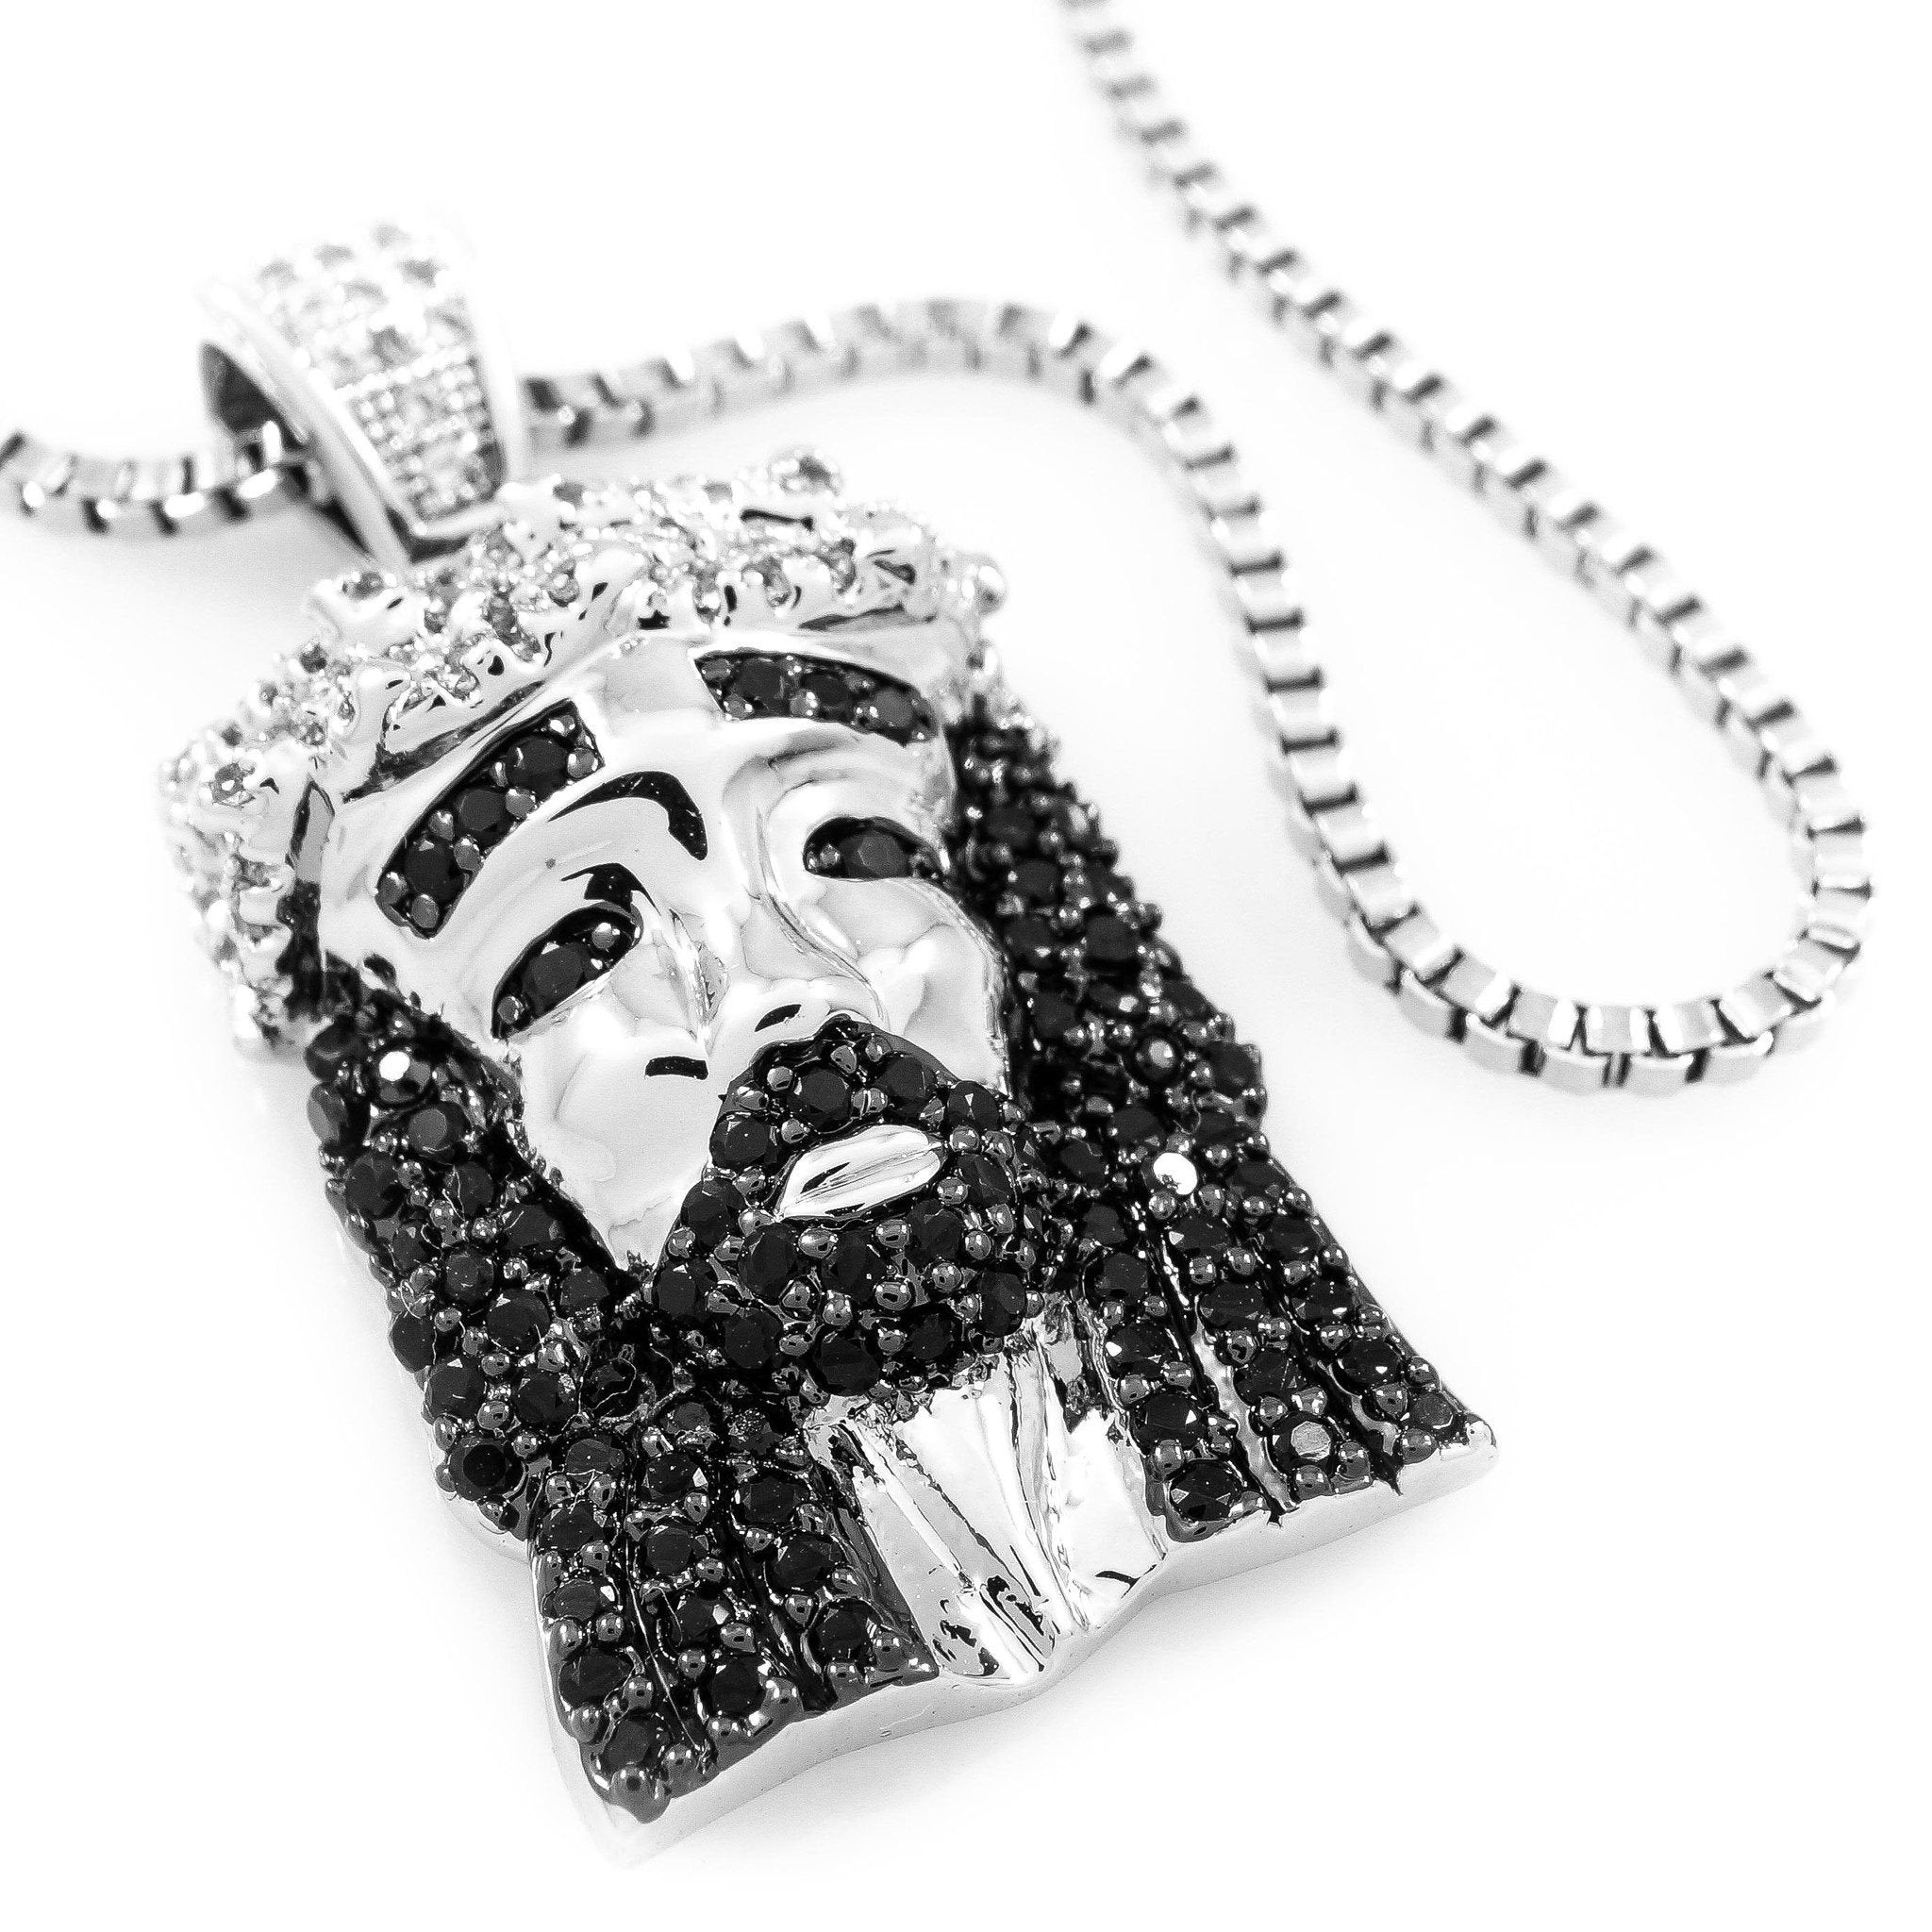 Affordable 18k White Gold/Black CZ Iced Out Mini Jesus Piece 1 With Box Hip Hop Chain - White Background